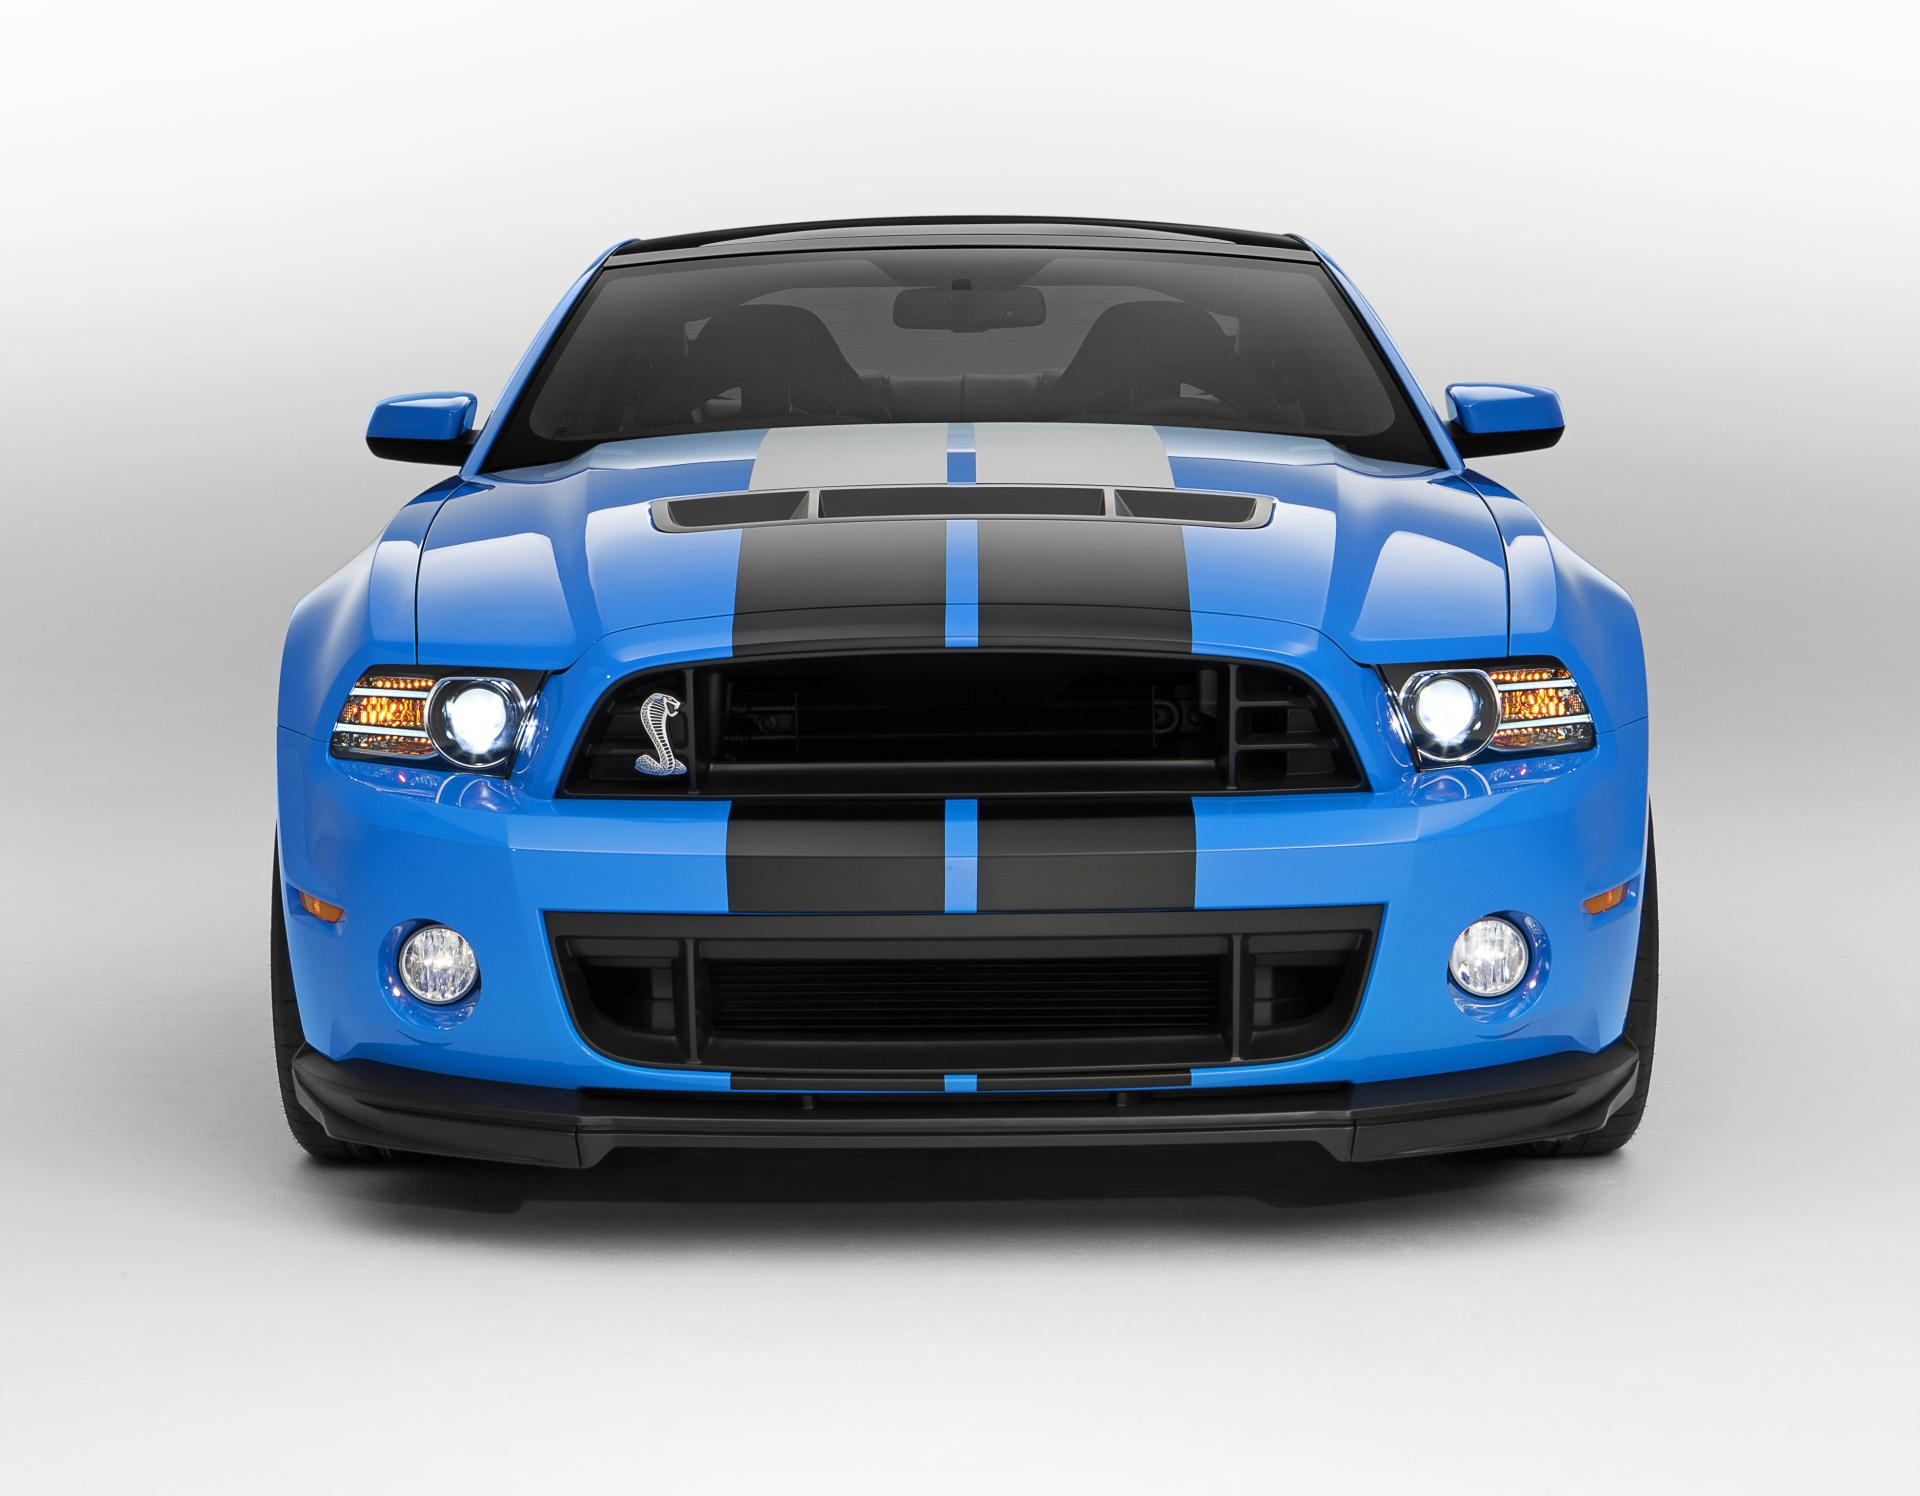 2013 Shelby Mustang GT500 News and Information